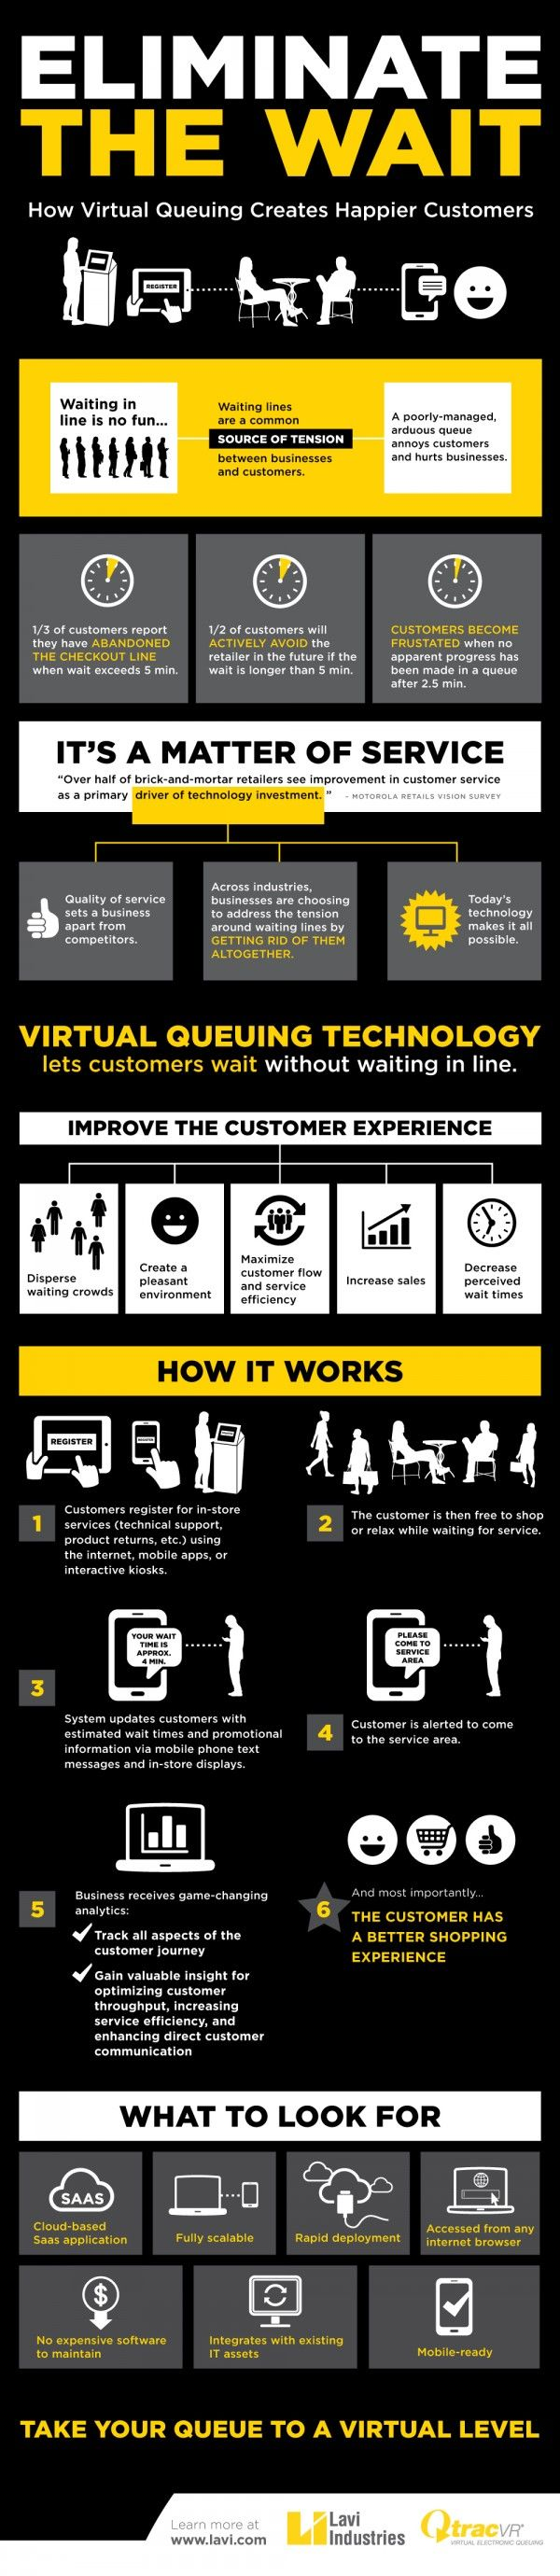 best images about customer service great businesses are choosing to address the tension around waiting lines by getting rid of them altogether learn about the advantages of virtual queuing